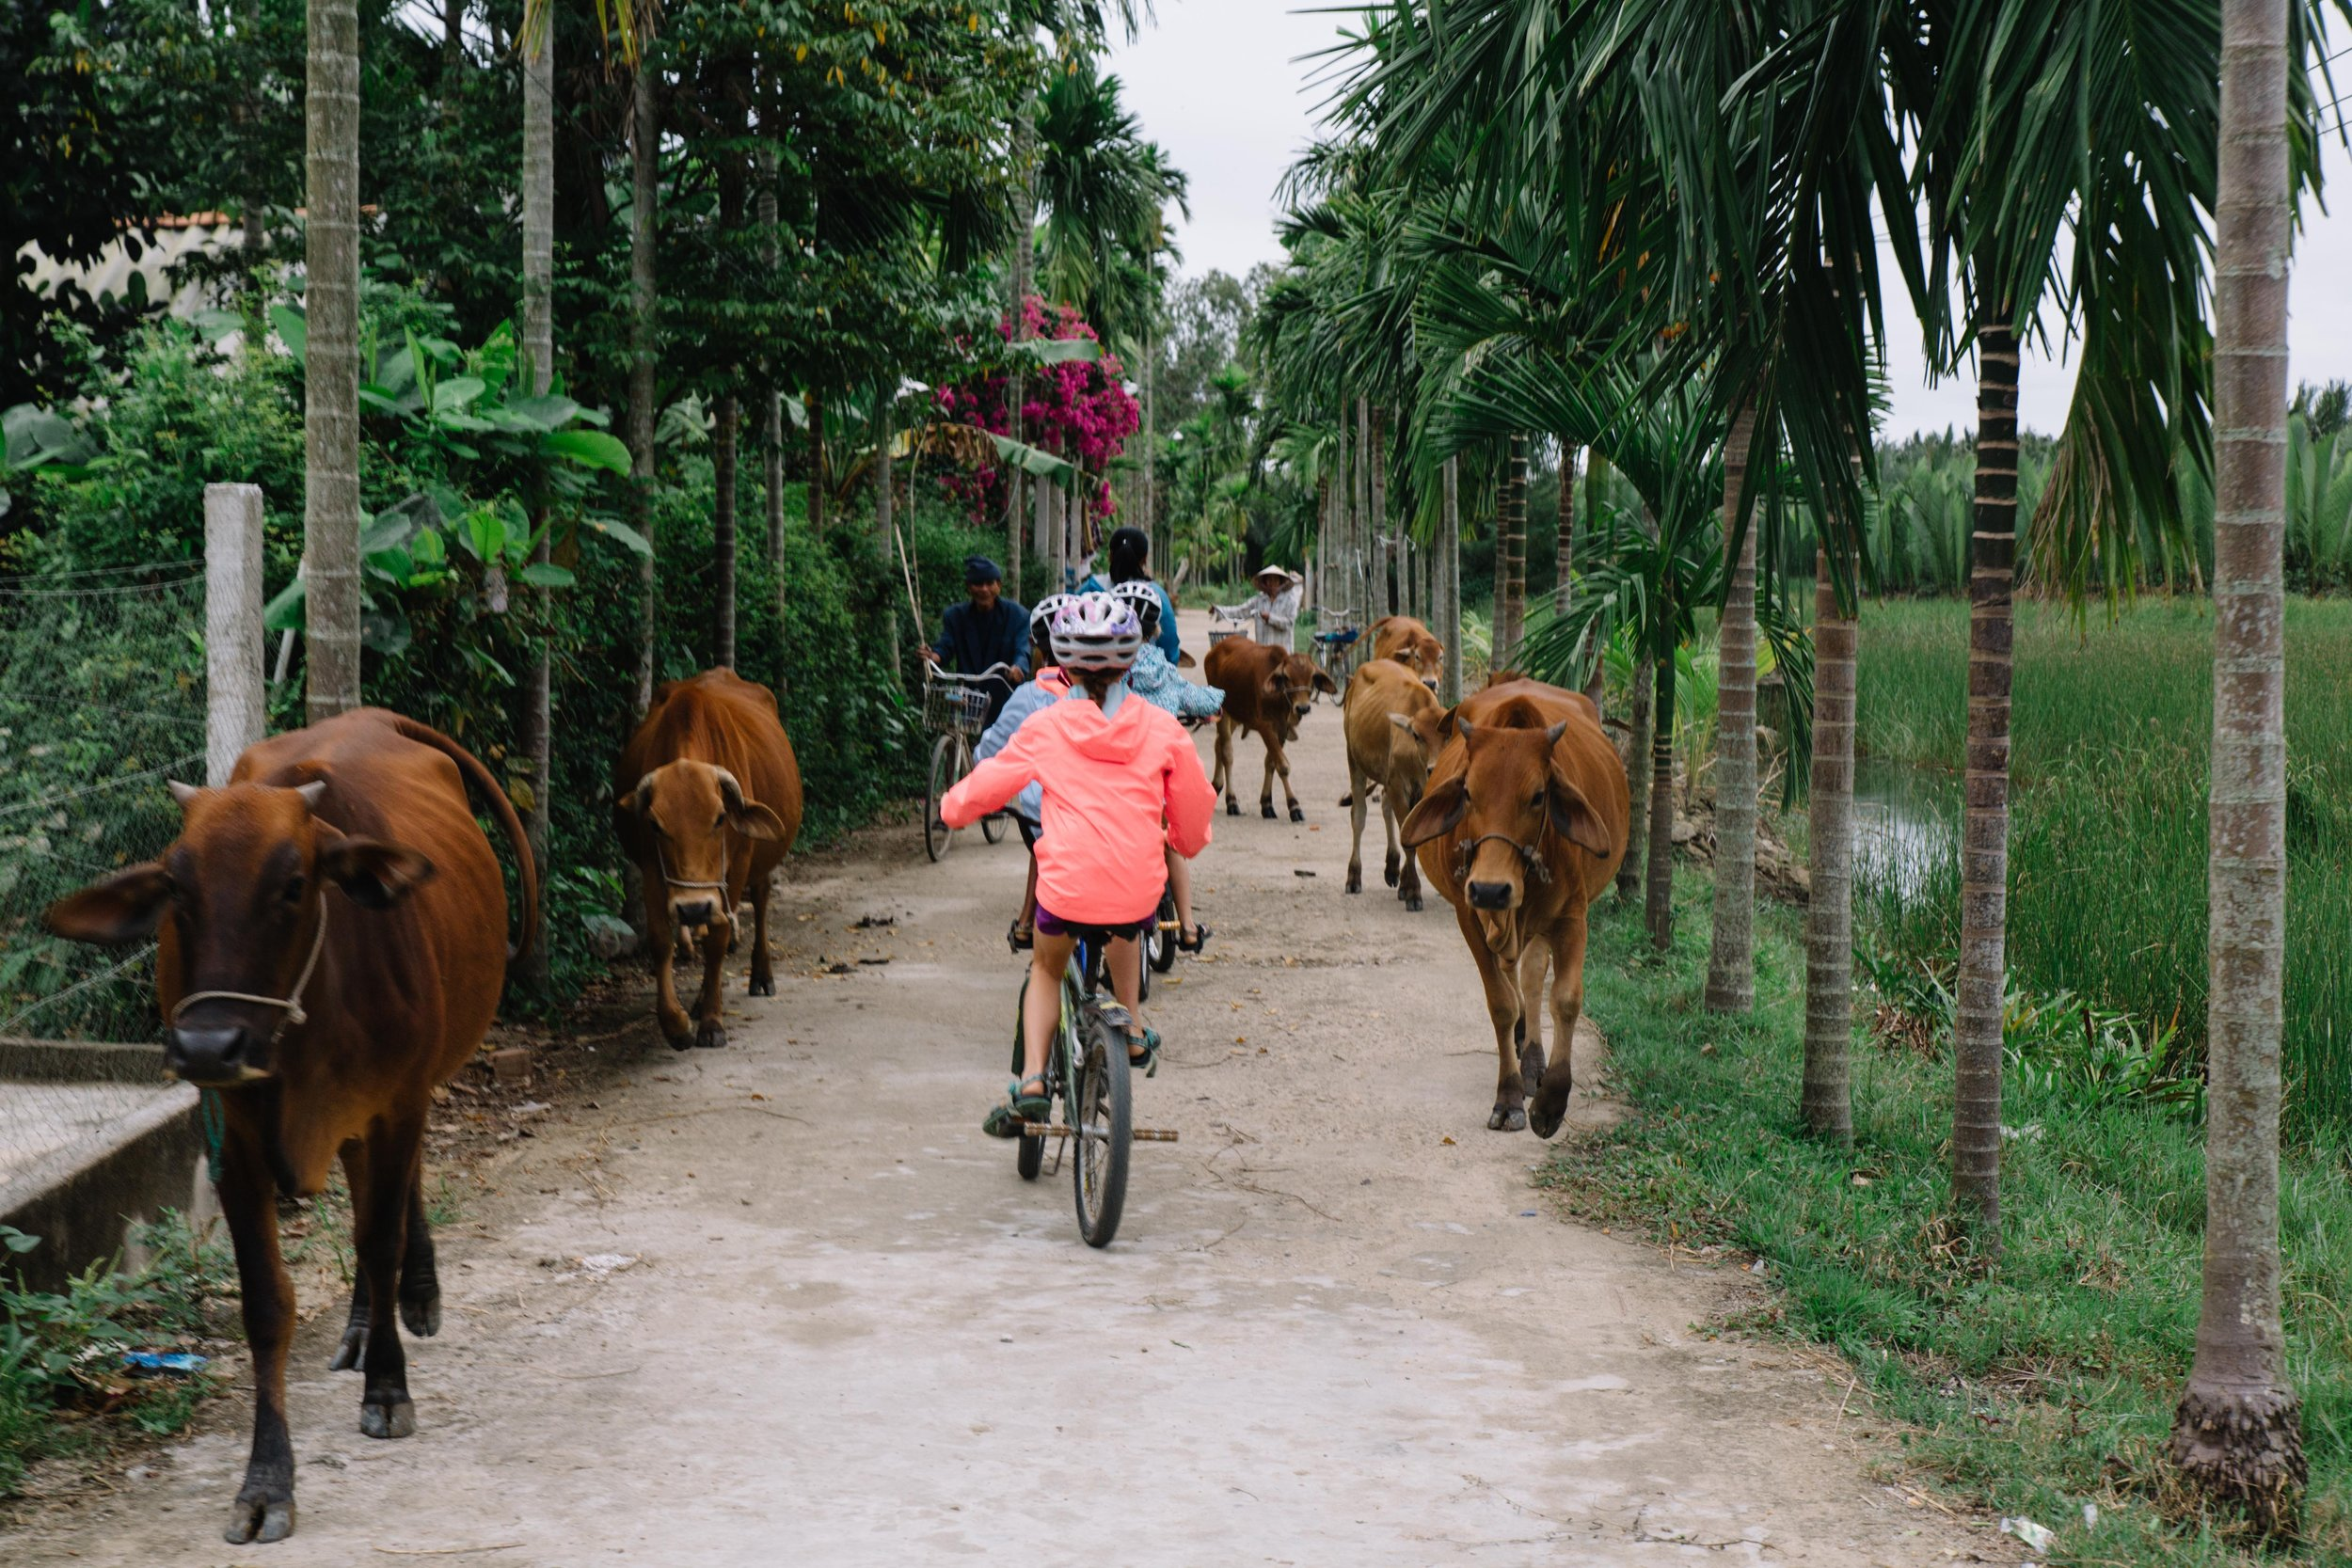 Vietnam Village Life. After a while, you just get used to avoiding whatever you may encounter on the road......including an entire herd of cattle.